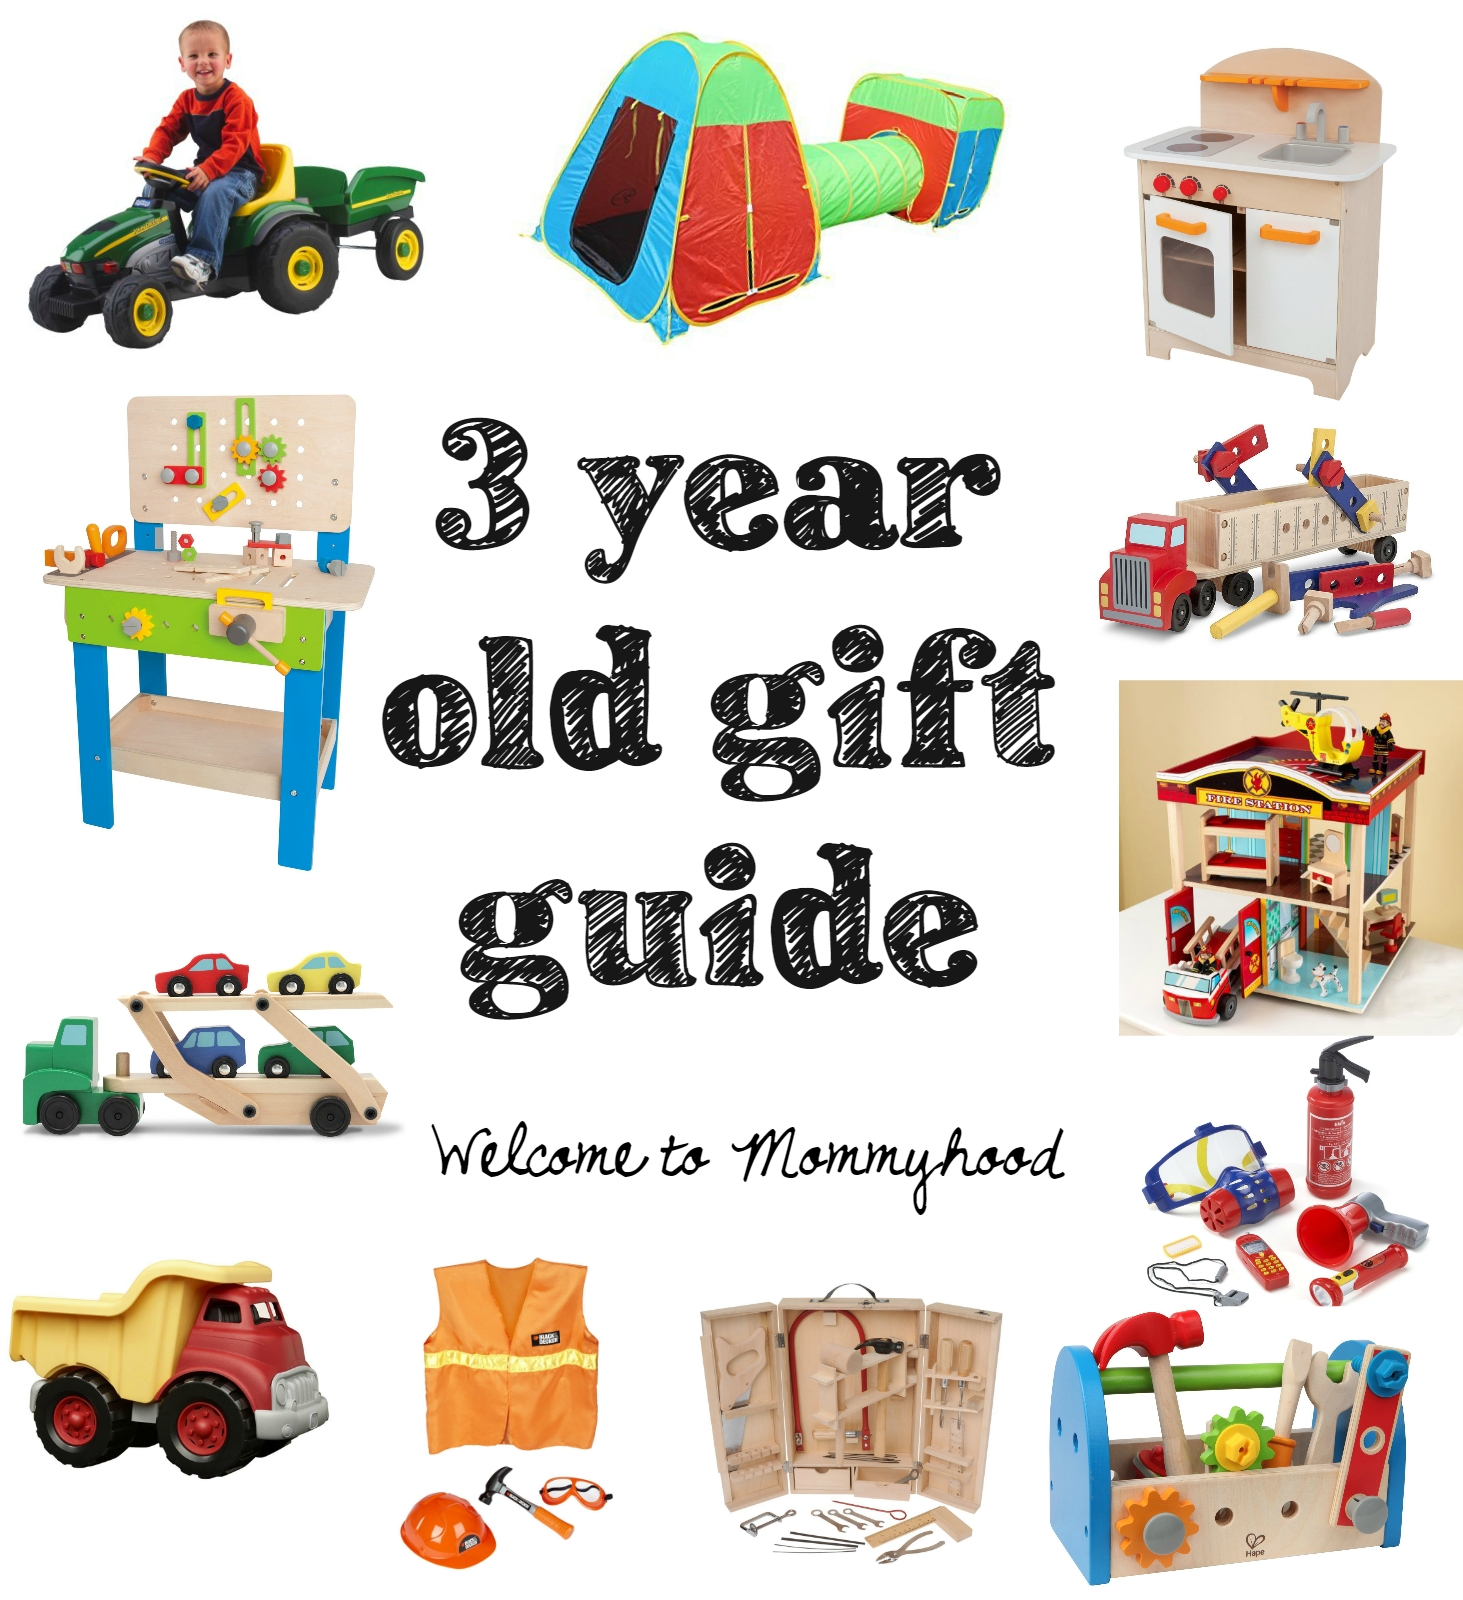 10 Ideal Birthday Gift Ideas For 6 Year Old Boy Themes Sew Cool Maker Together